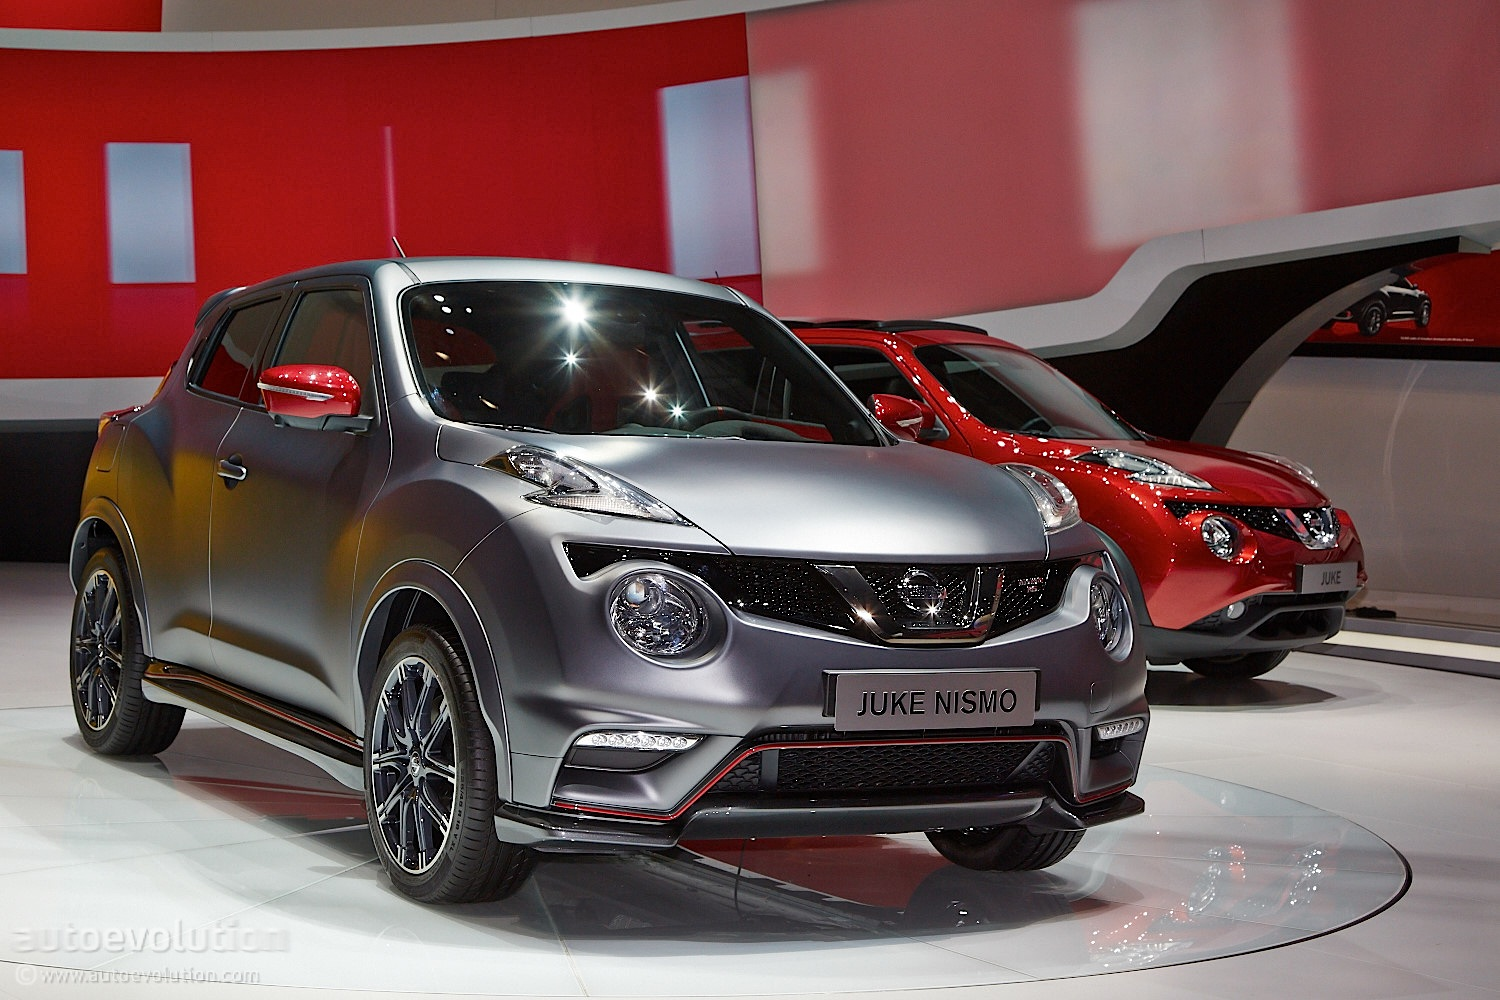 nissan juke nismo rs facelift debuts in geneva with 218 hp live photos autoevolution. Black Bedroom Furniture Sets. Home Design Ideas